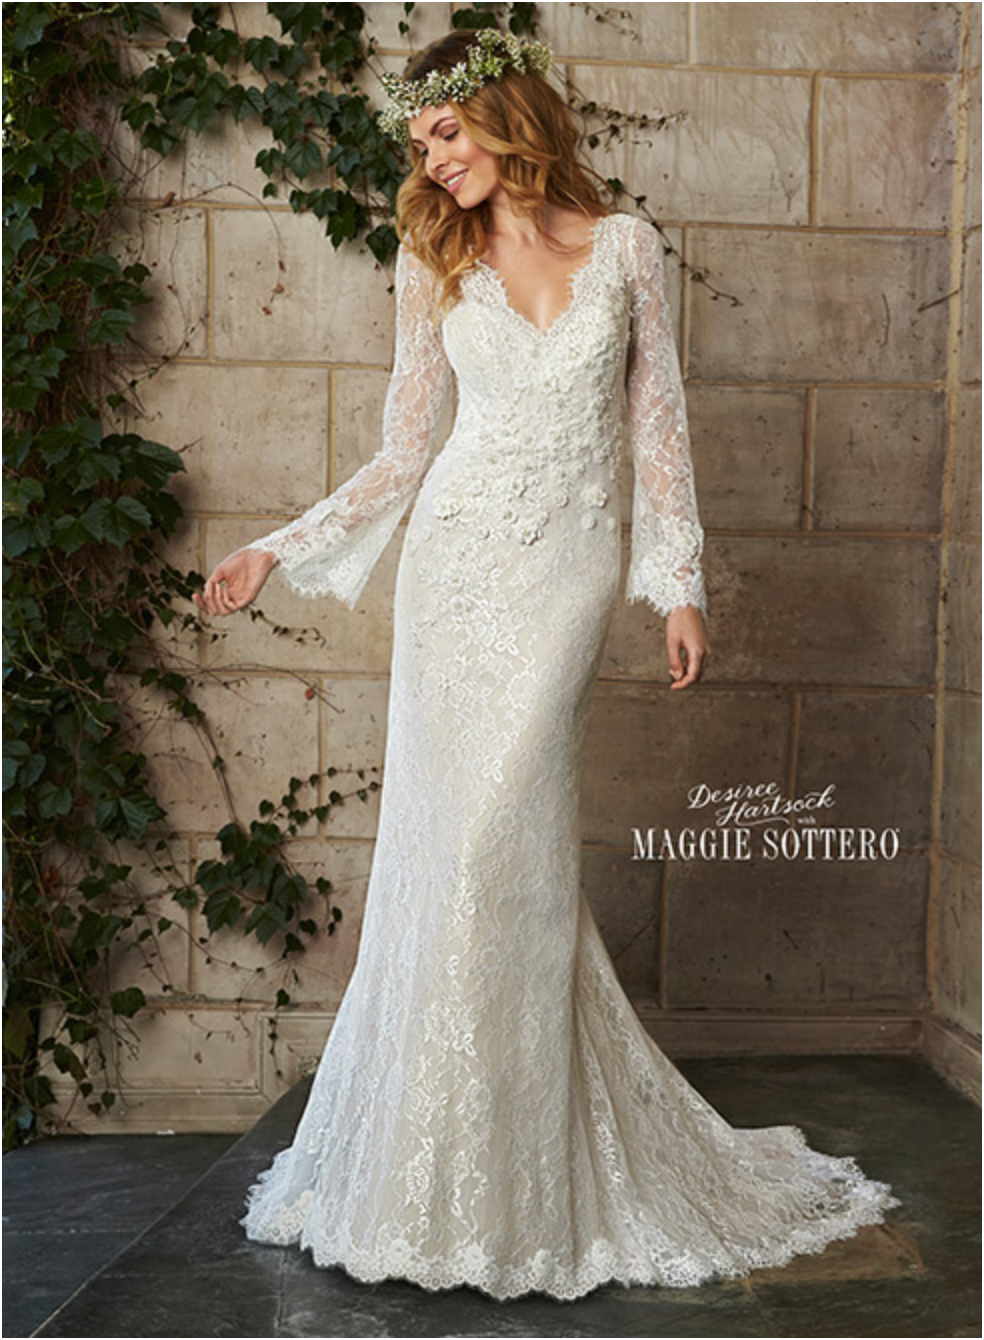 Specialkollektion Hos Maggie Sottero Proms Amp Weddings